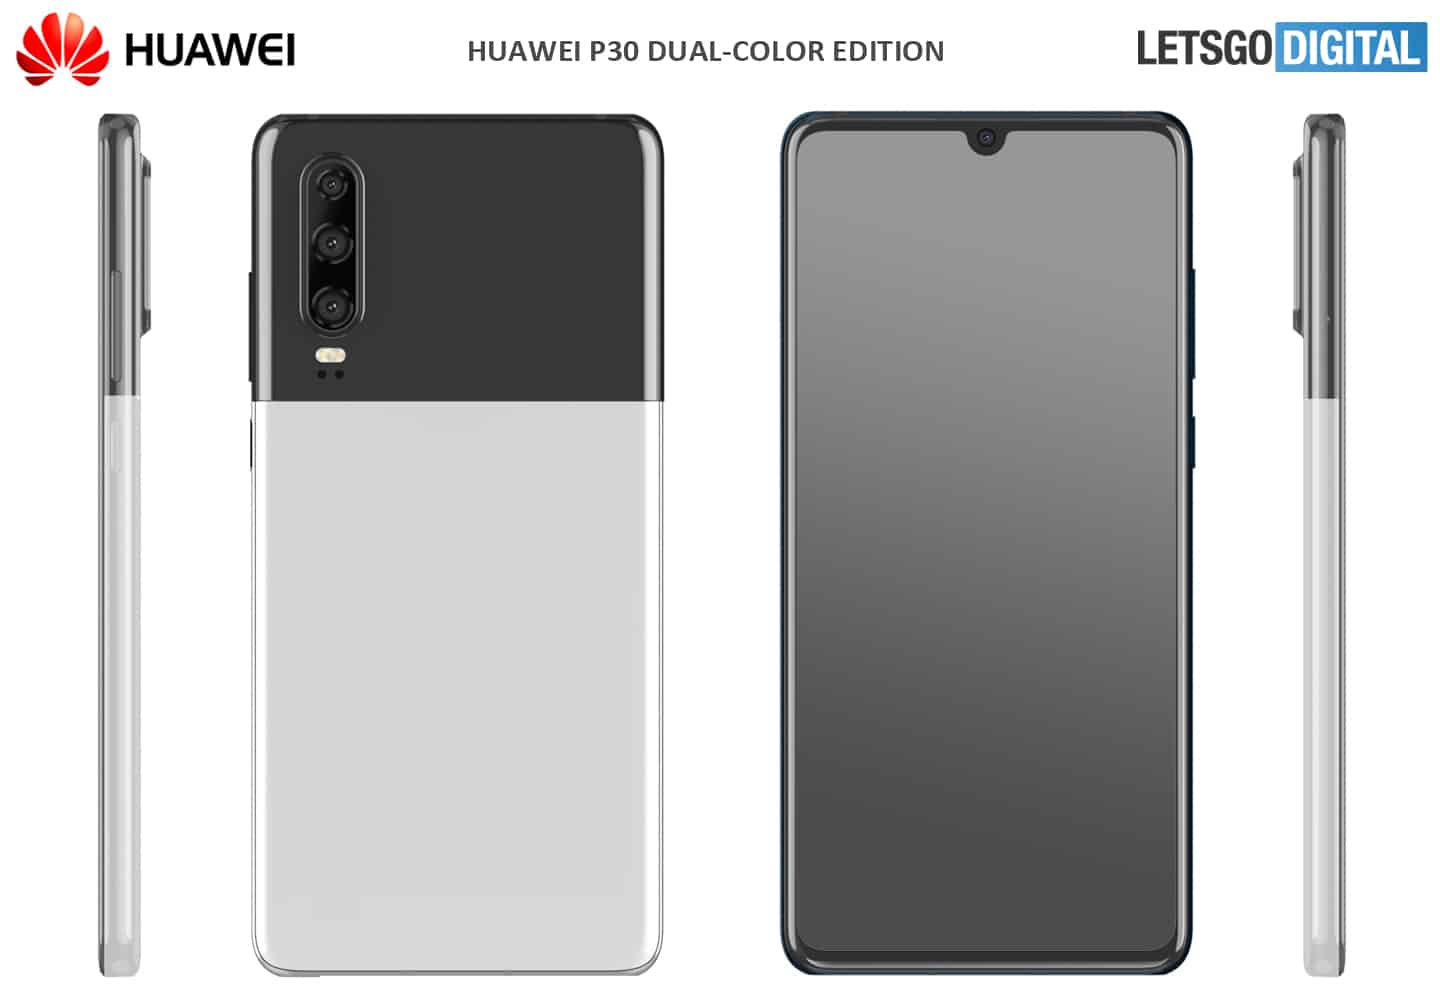 Huawei P30 dual color option 2